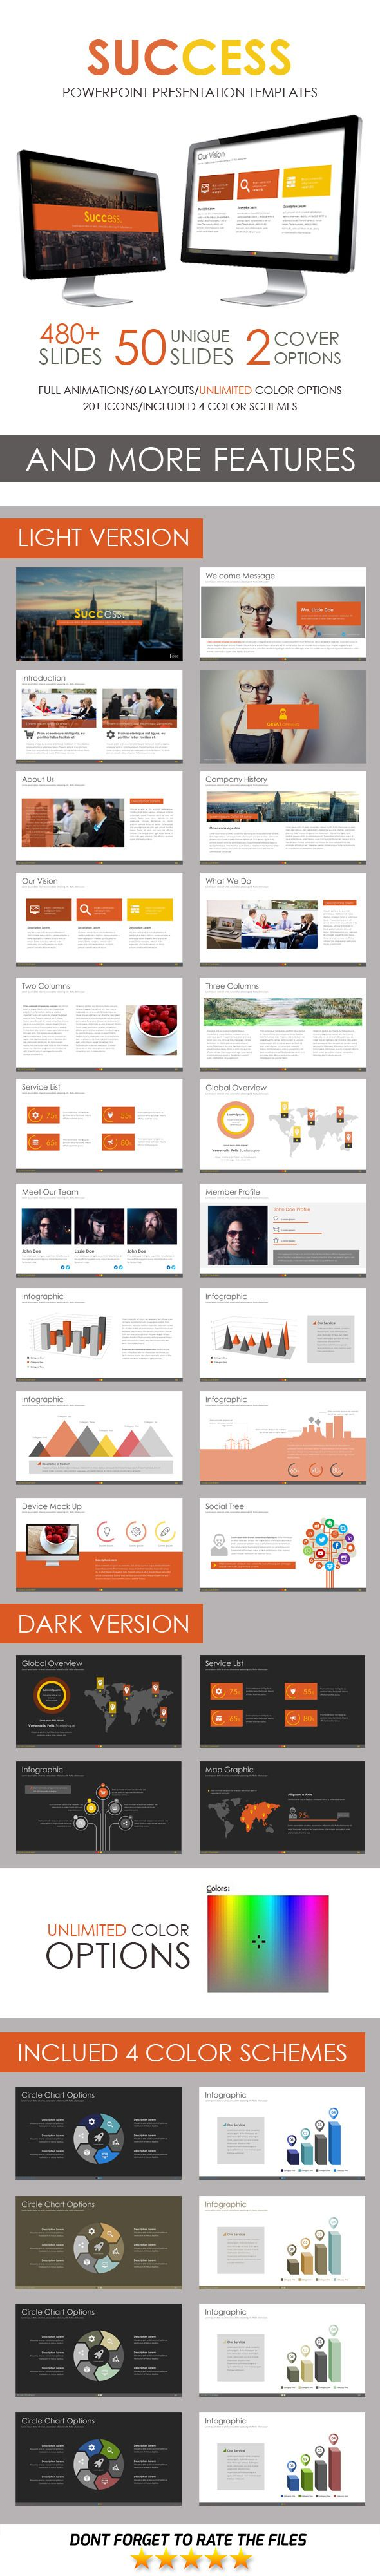 Success PowerPoint Template #design #slides Download: http://graphicriver.net/item/success-powerpoint-template/12703331?ref=ksioks